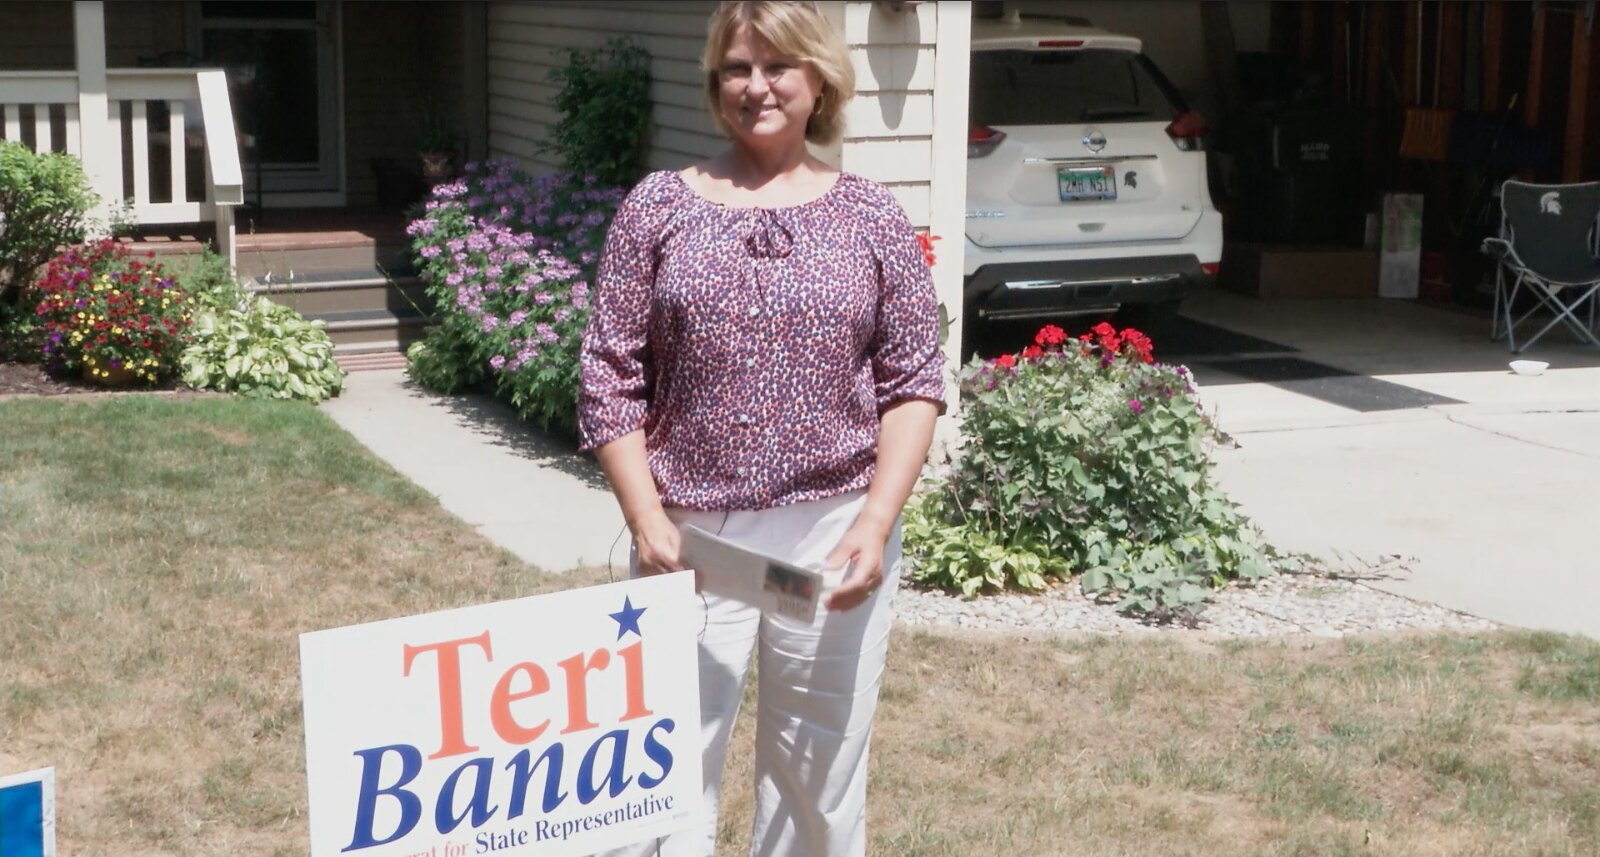 On the Campaign Trail: Teri Banas 69th State Rep. Candidate (D)